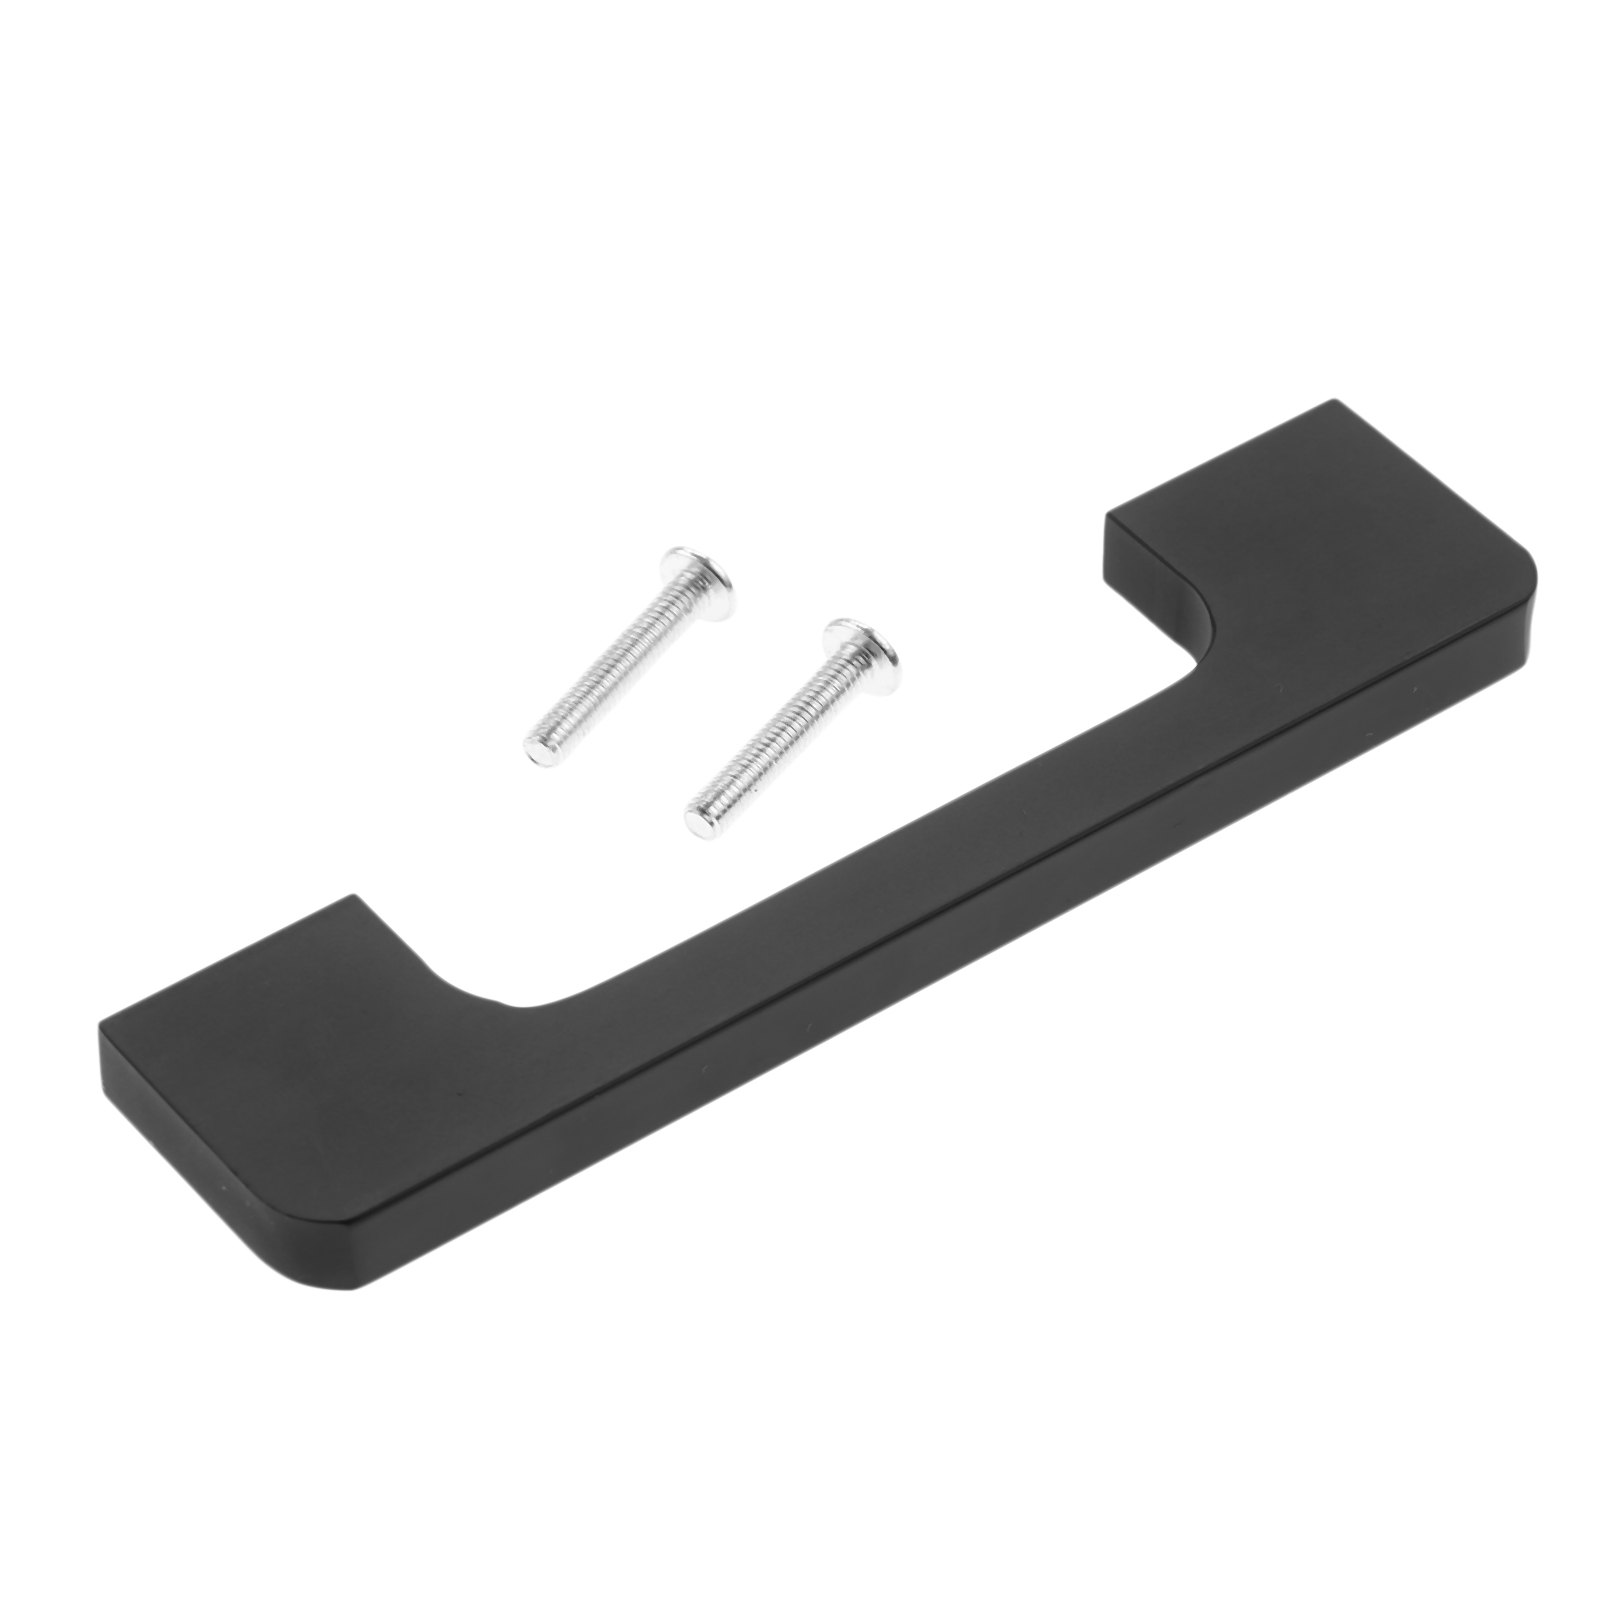 1Pc 96 256mm Black Furniture Handles Wardrobe Door Pull Dresser Drawer Handle Kitchen Cupboard Pulls Cabinet Knobs and Handles in Cabinet Pulls from Home Improvement